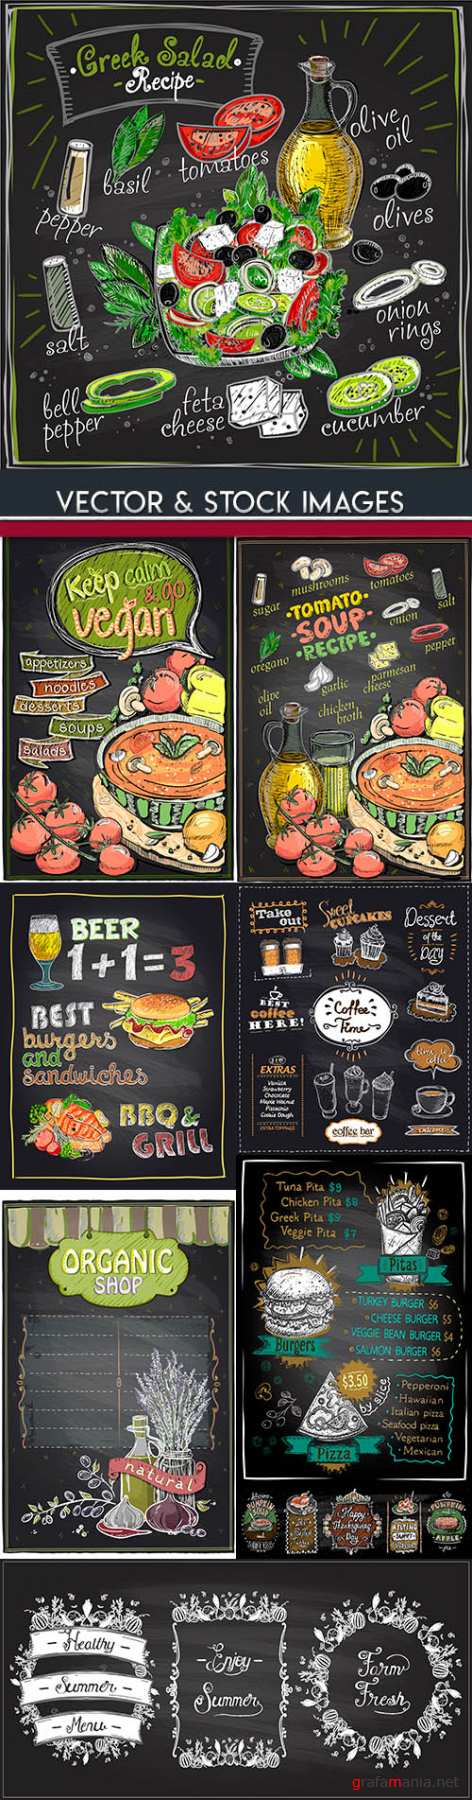 Healthy and useful food menu restaurant design